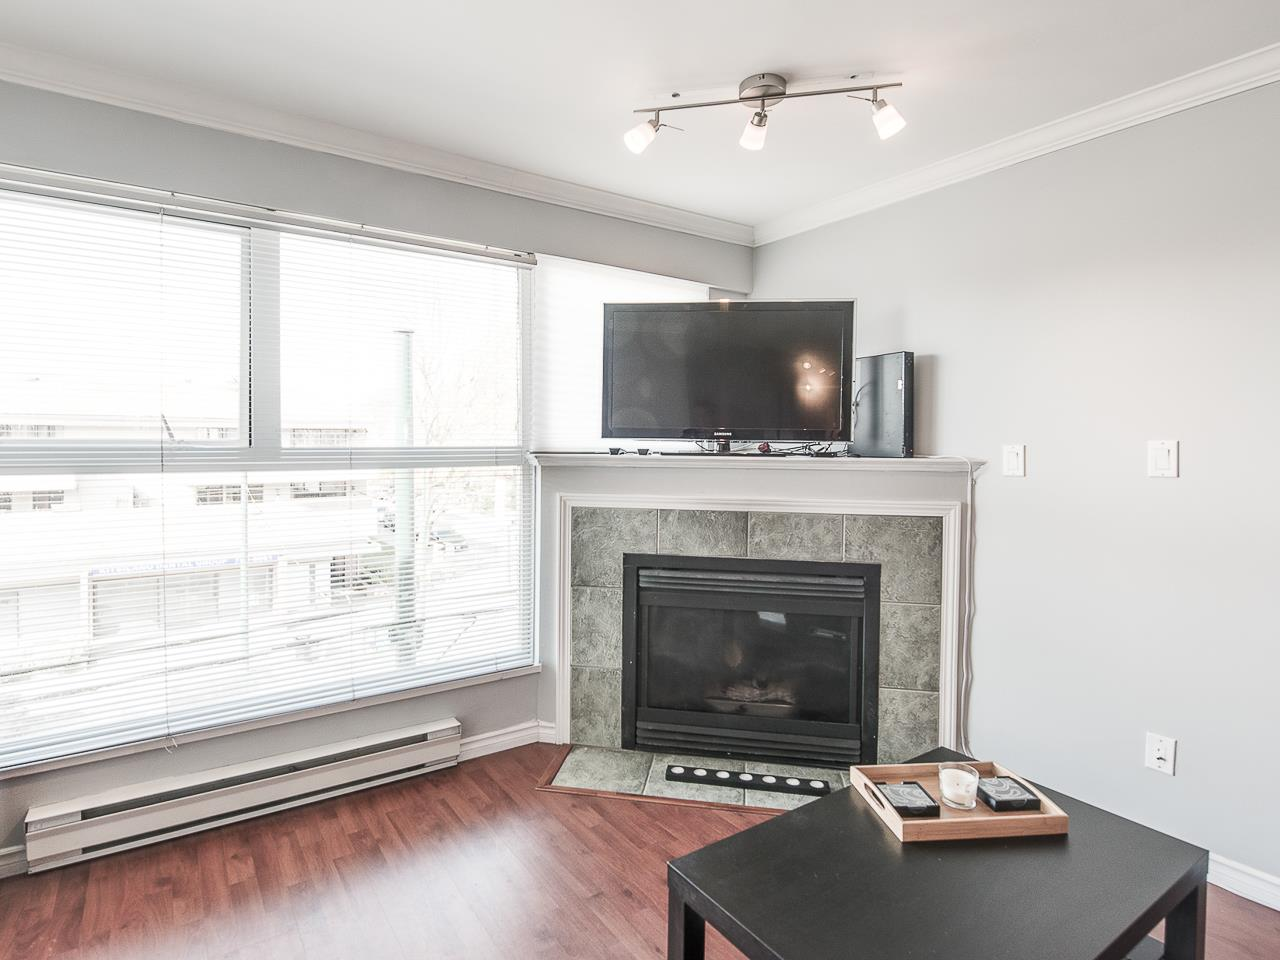 Photo 2: 304 2025 STEPHENS STREET in Vancouver: Kitsilano Condo for sale (Vancouver West)  : MLS® # R2158946